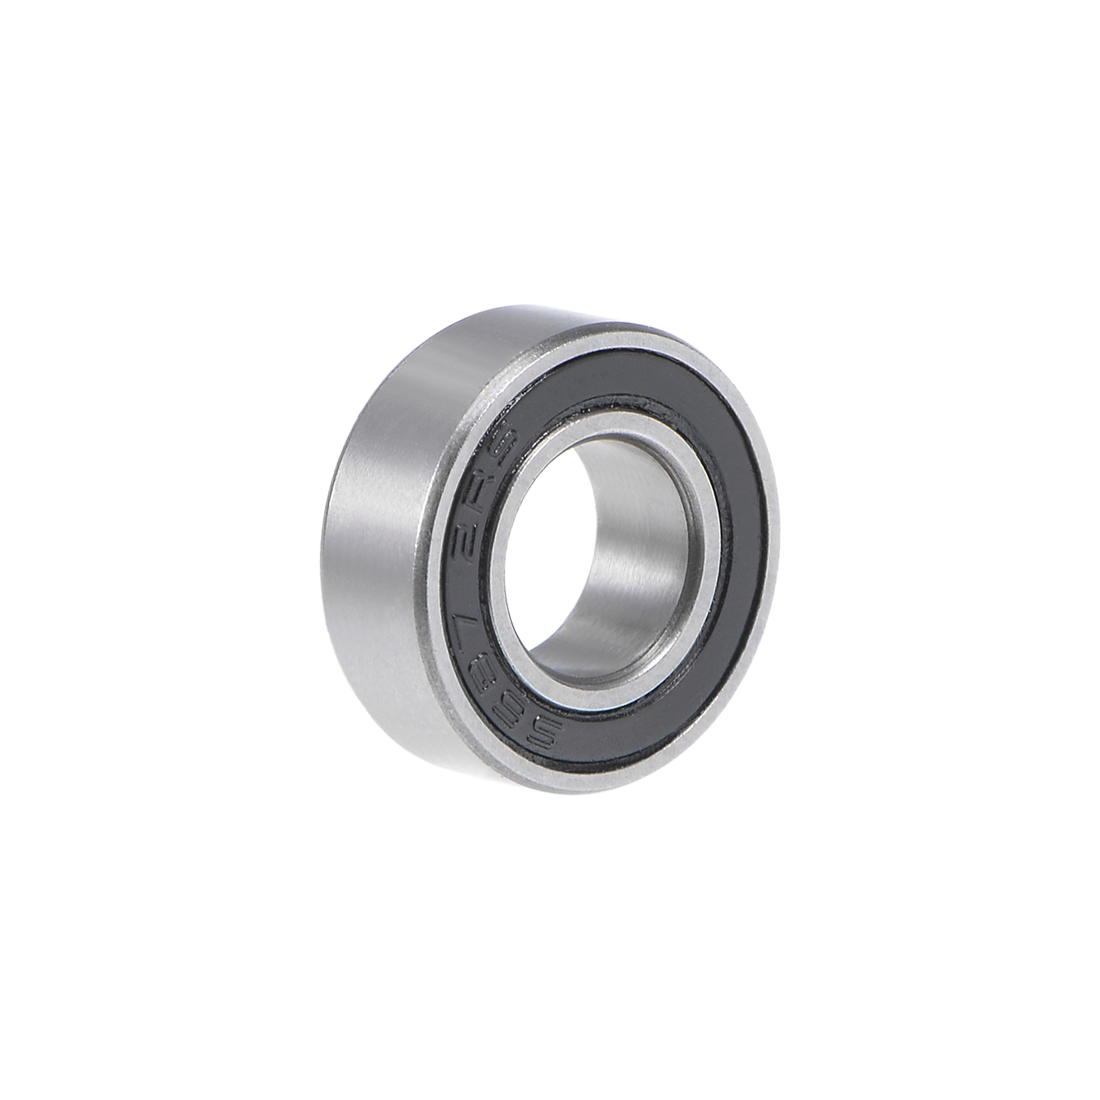 S687-2RS Stainless Steel Ball Bearing 7x14x5mm Double Sealed 687RS Bearings